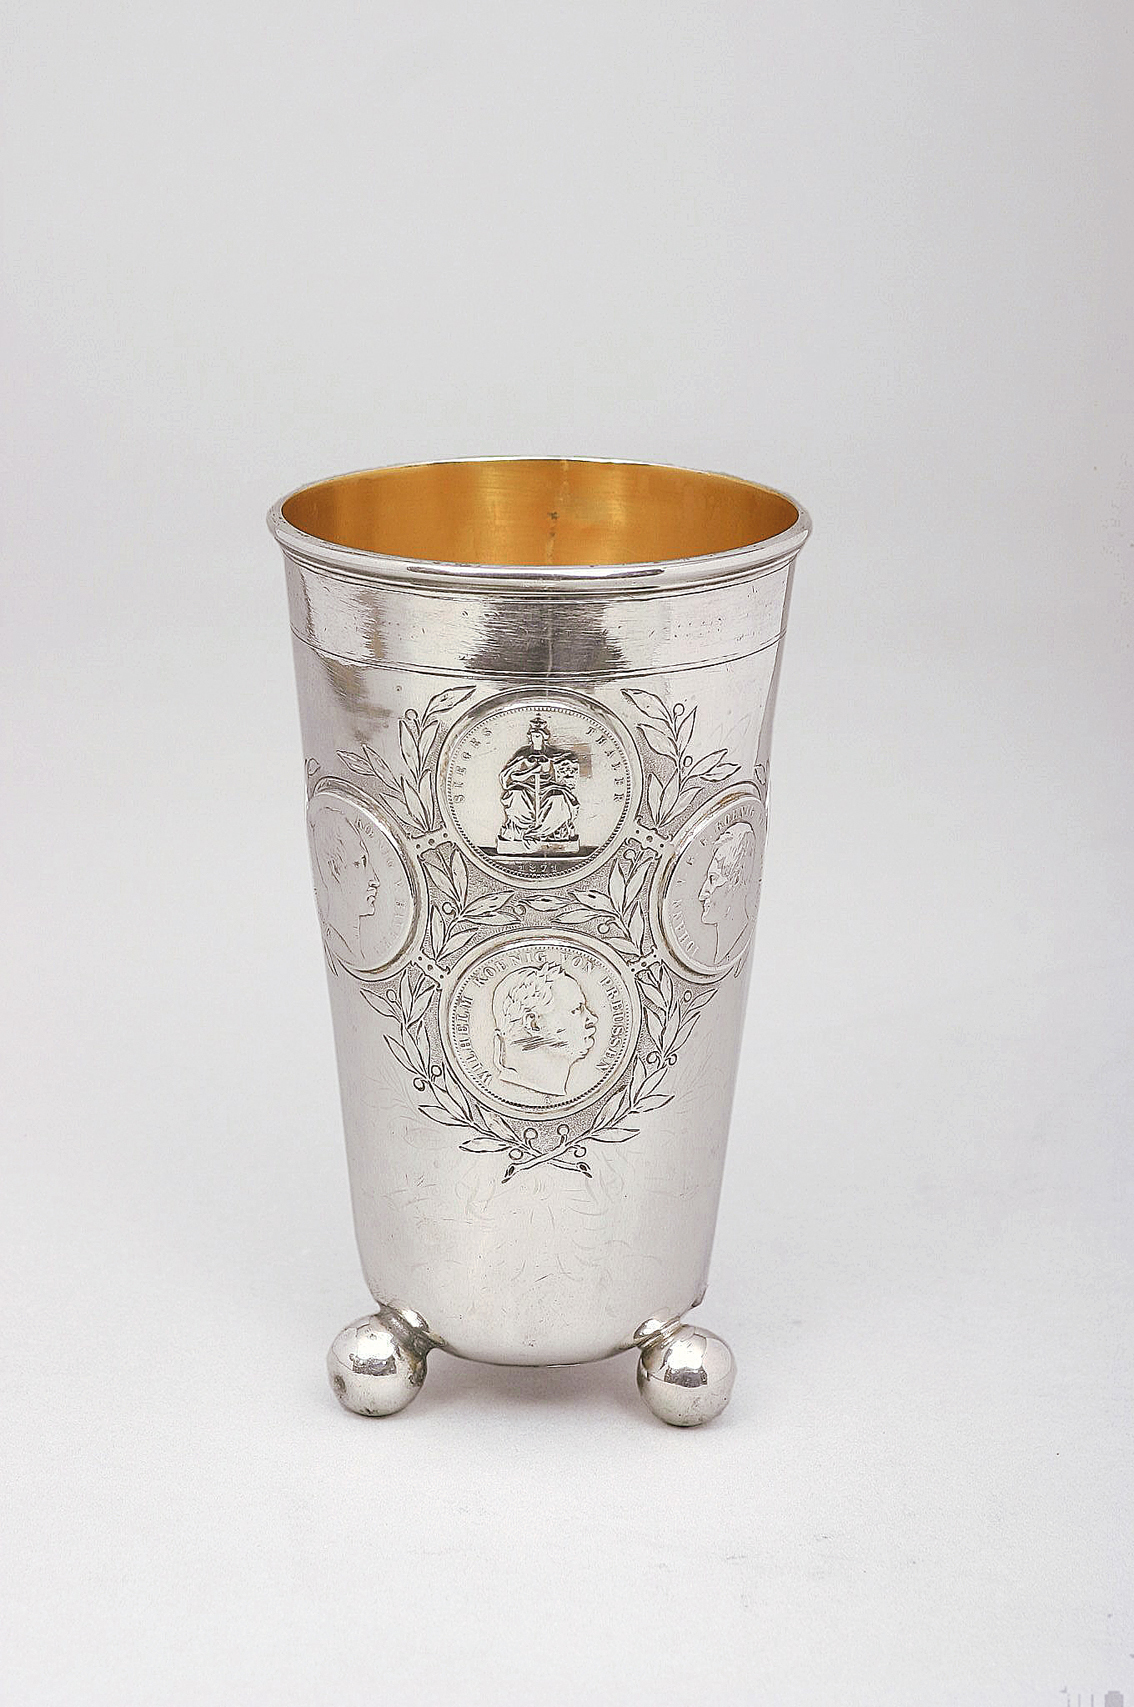 A Berlin cup with coins